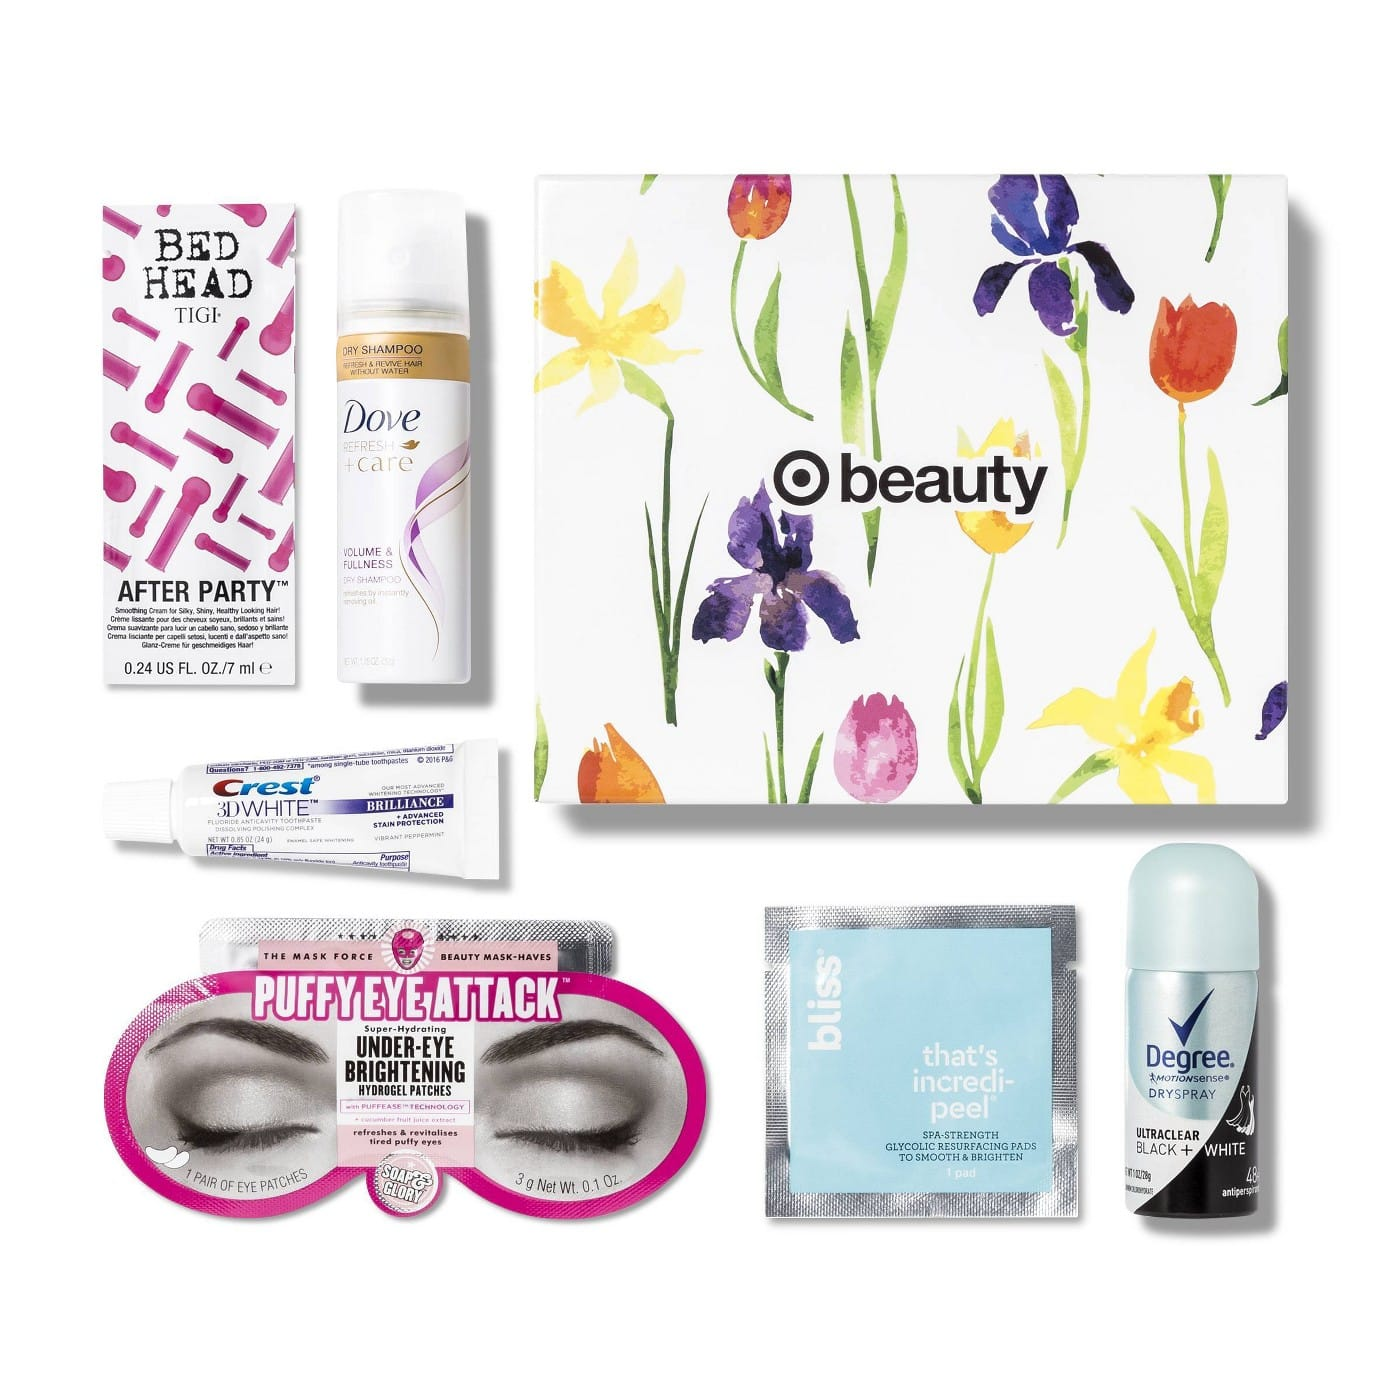 6-Piece Target April or April Naturals Beauty Box $7 Each + Free Shipping via Target